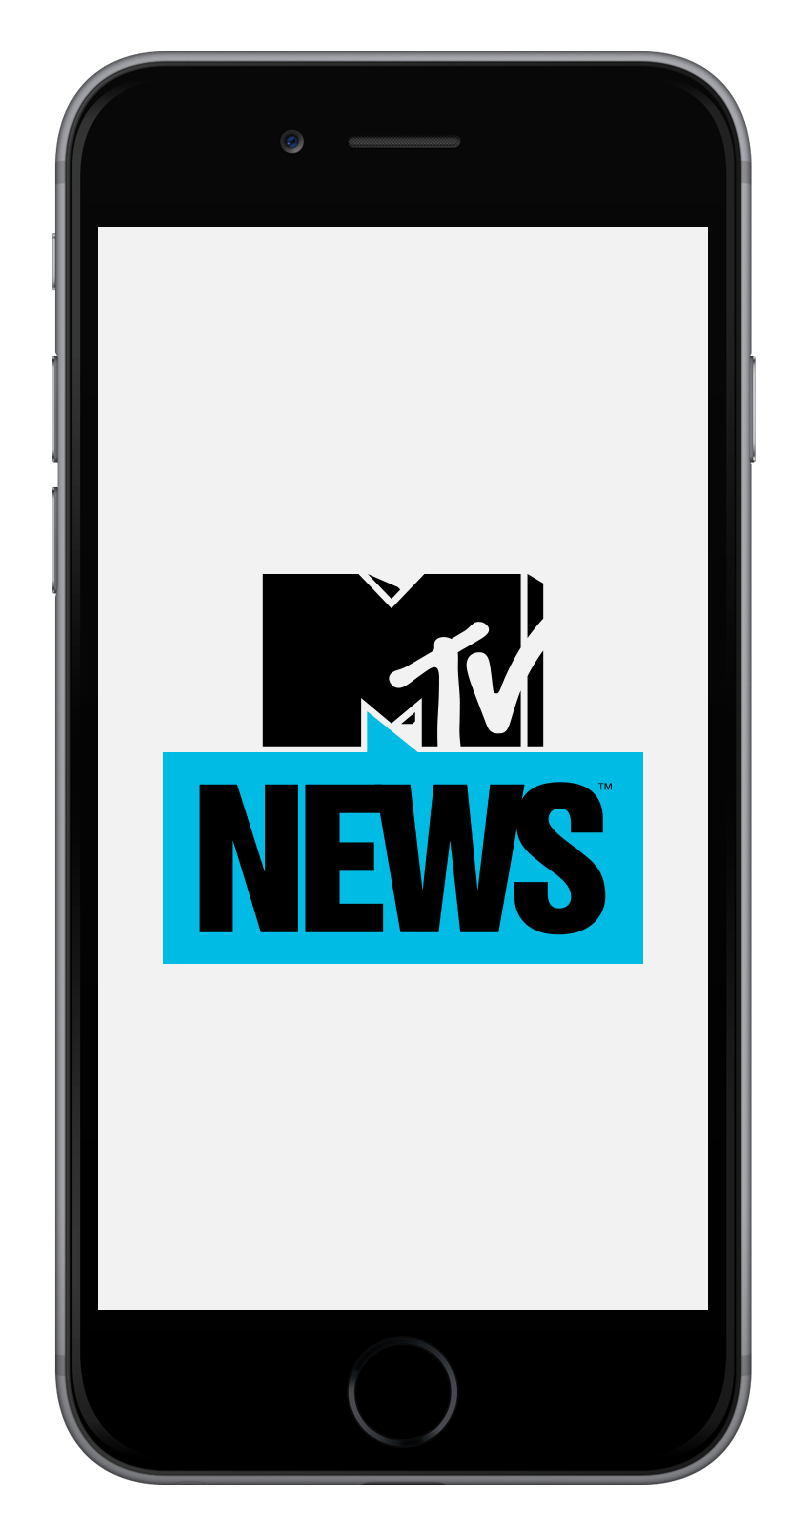 mtv-news-phone-screens-01.png